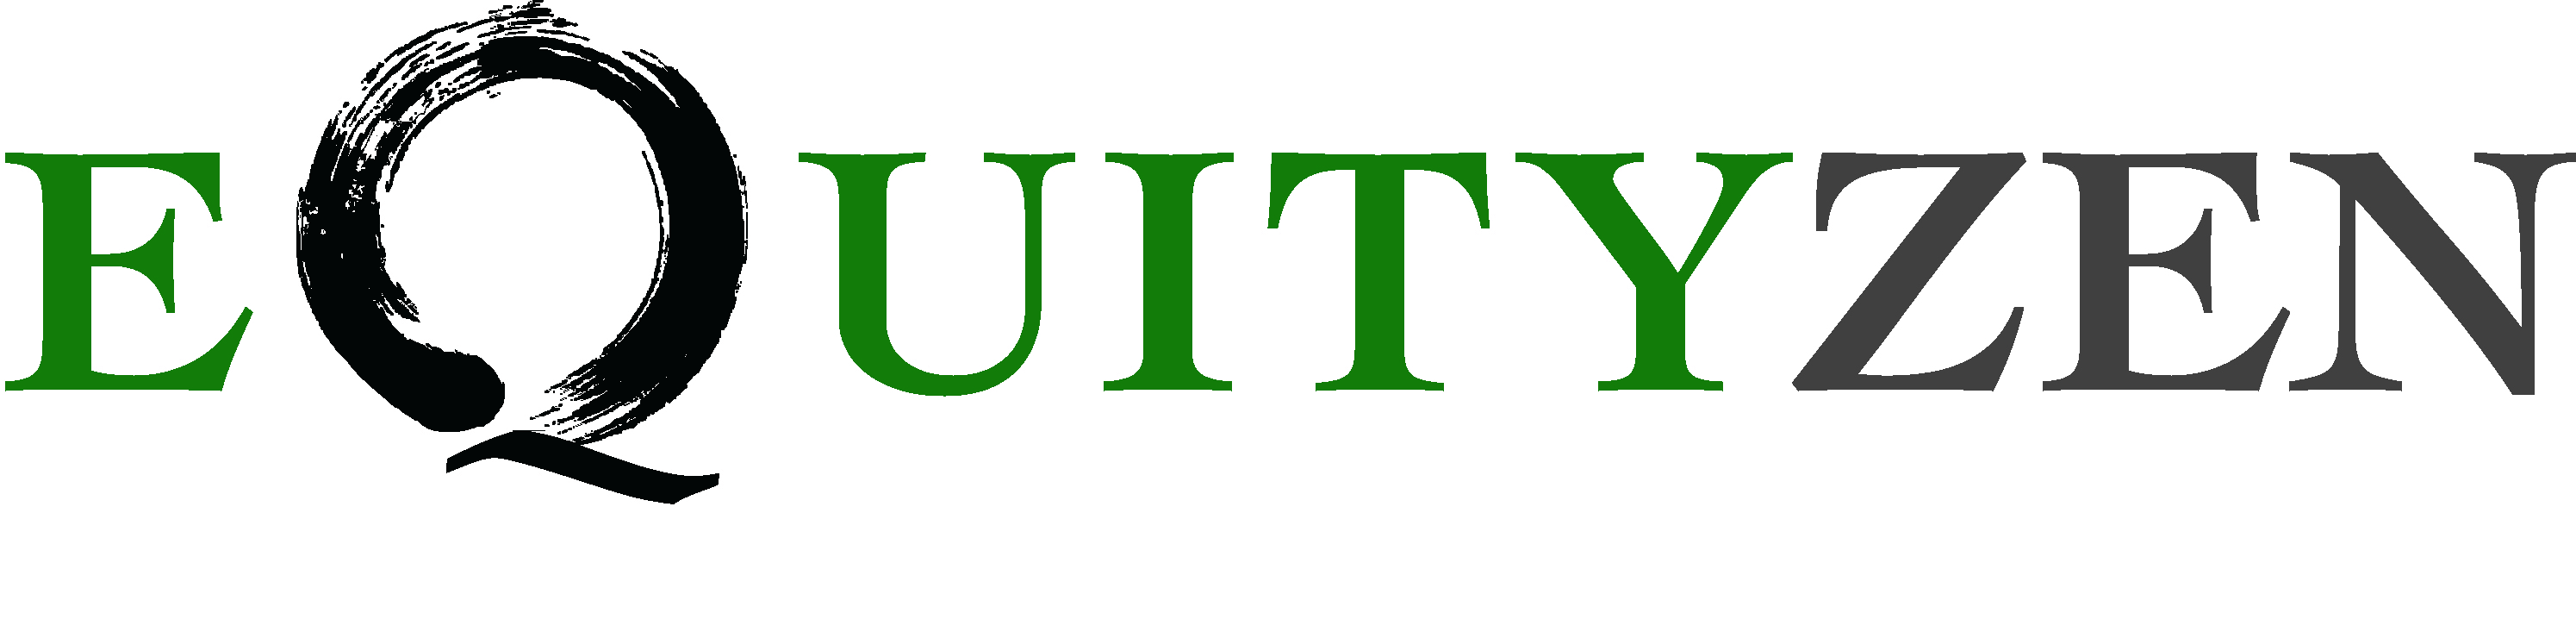 EquityZen Growth Opportunity Fund V LLC - Series 2 Stock